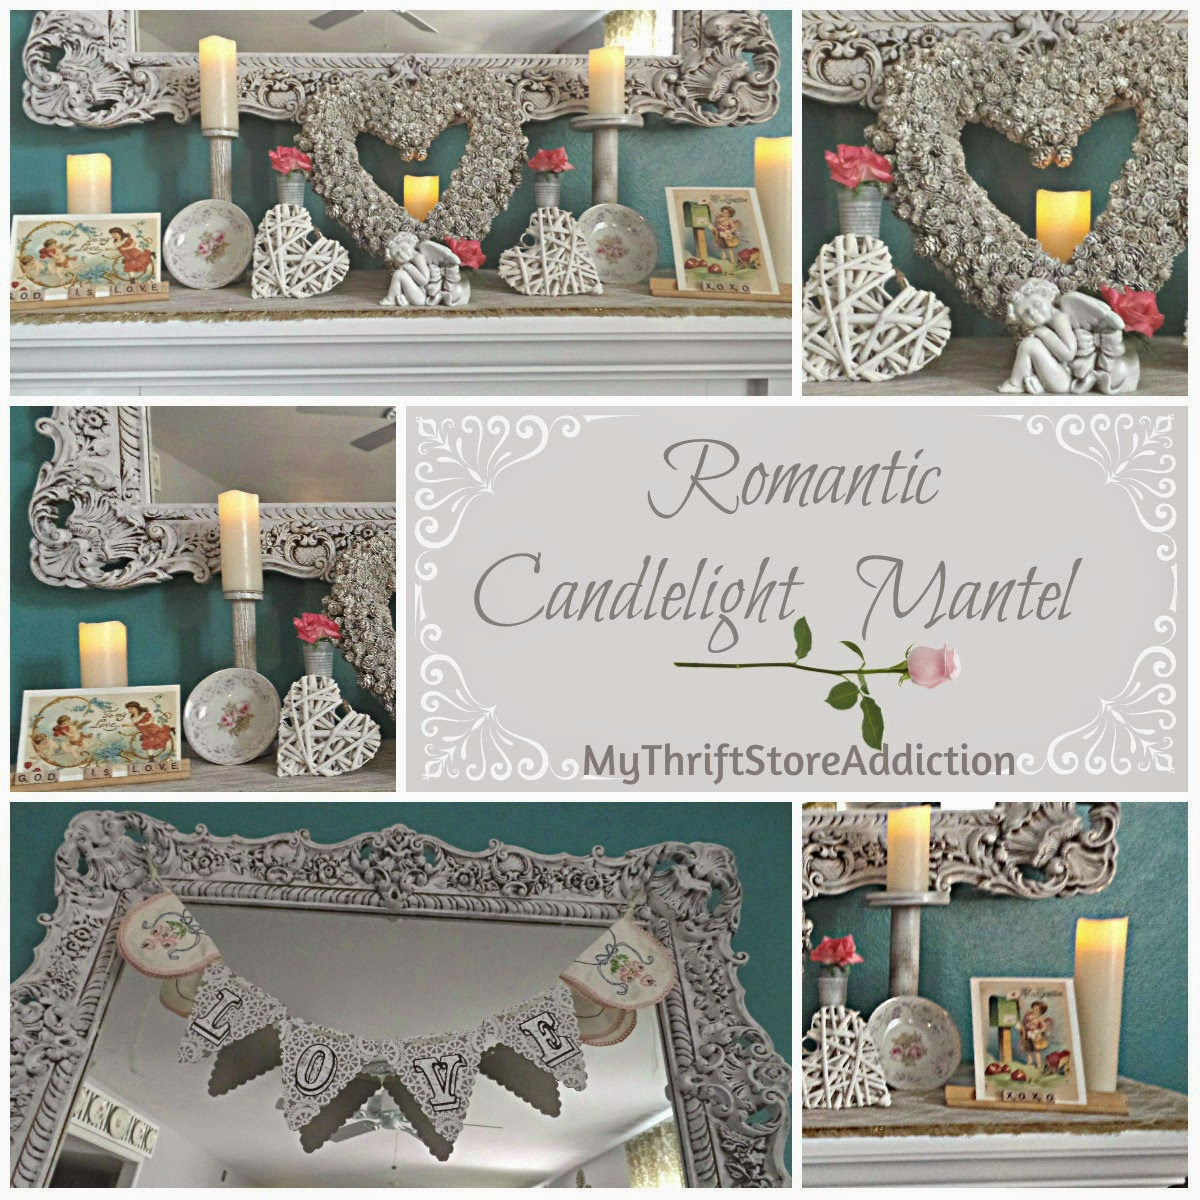 Romantic candlelight mantel